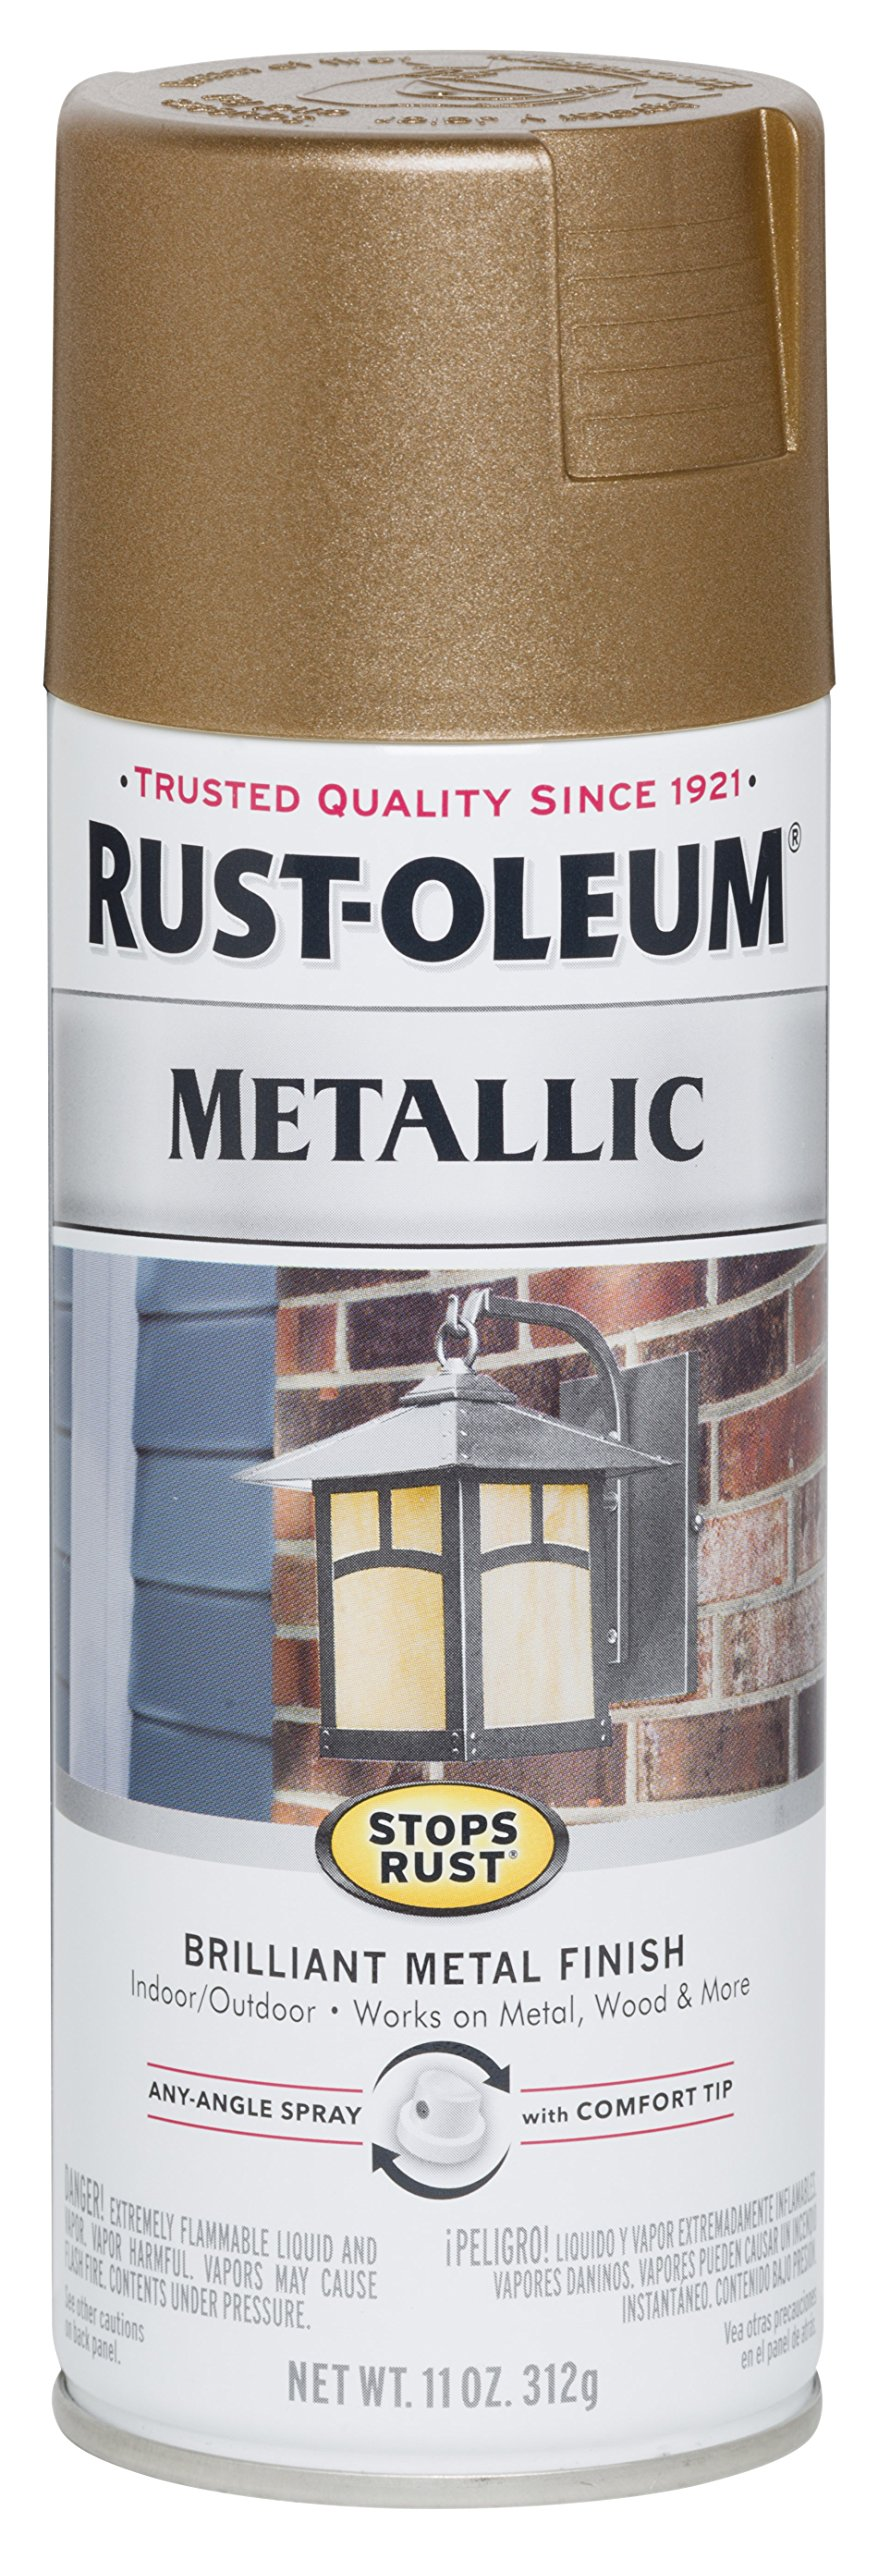 Rust-Oleum 7274830 Stops Rust Metallic Spray Paint, 11 oz, Antique Brass